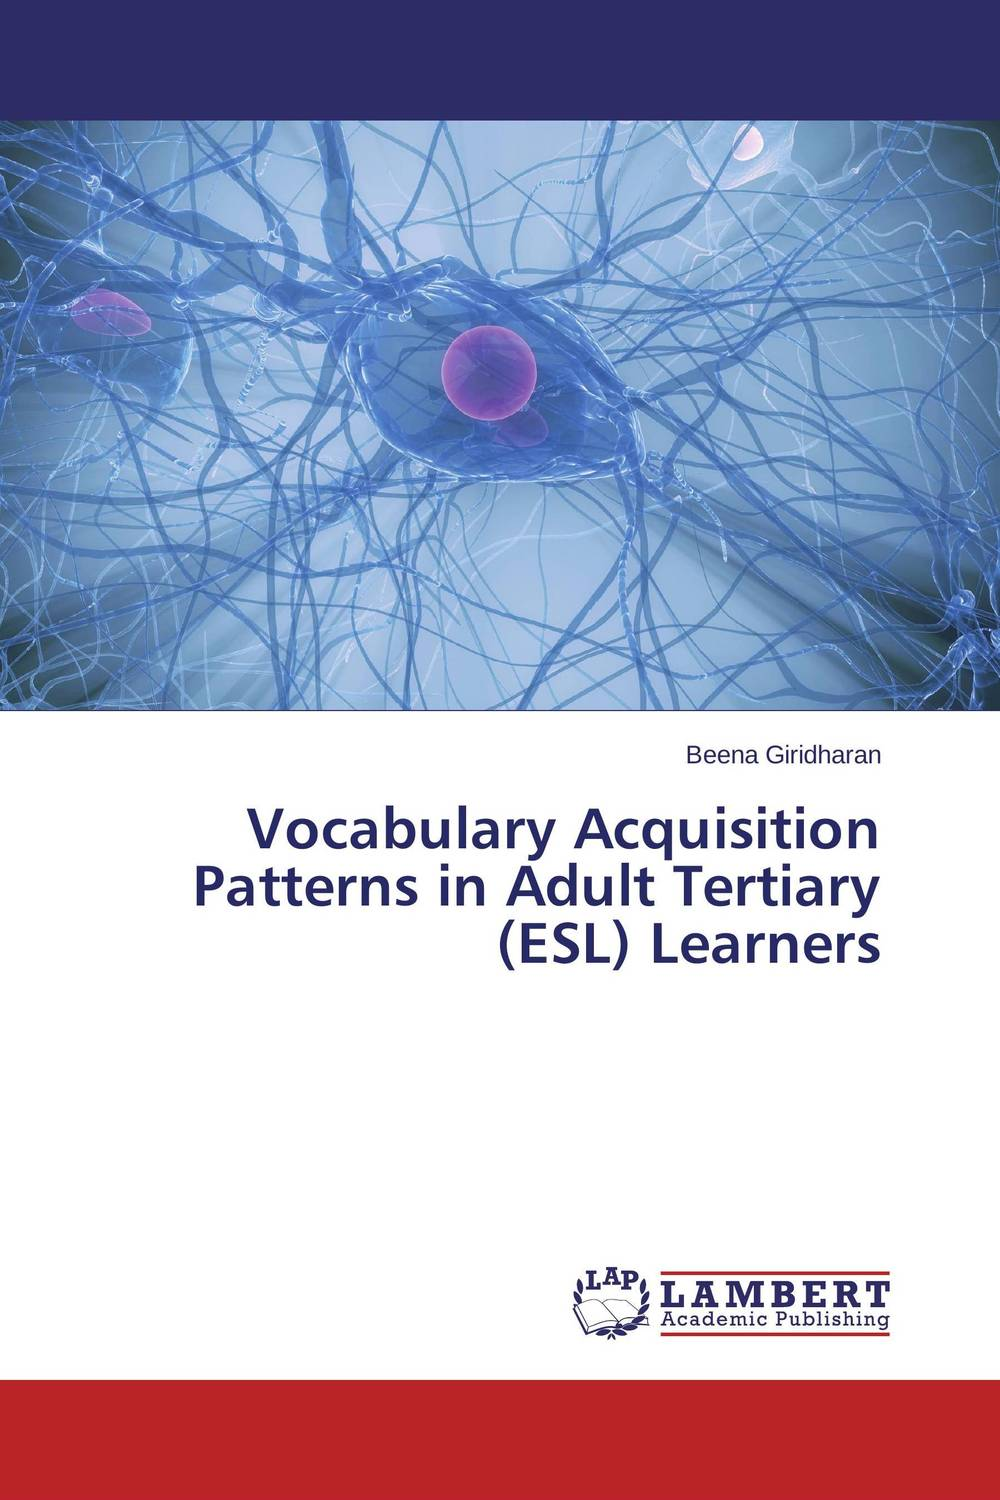 Vocabulary Acquisition Patterns in Adult Tertiary (ESL) Learners language change and lexical variation in youth language